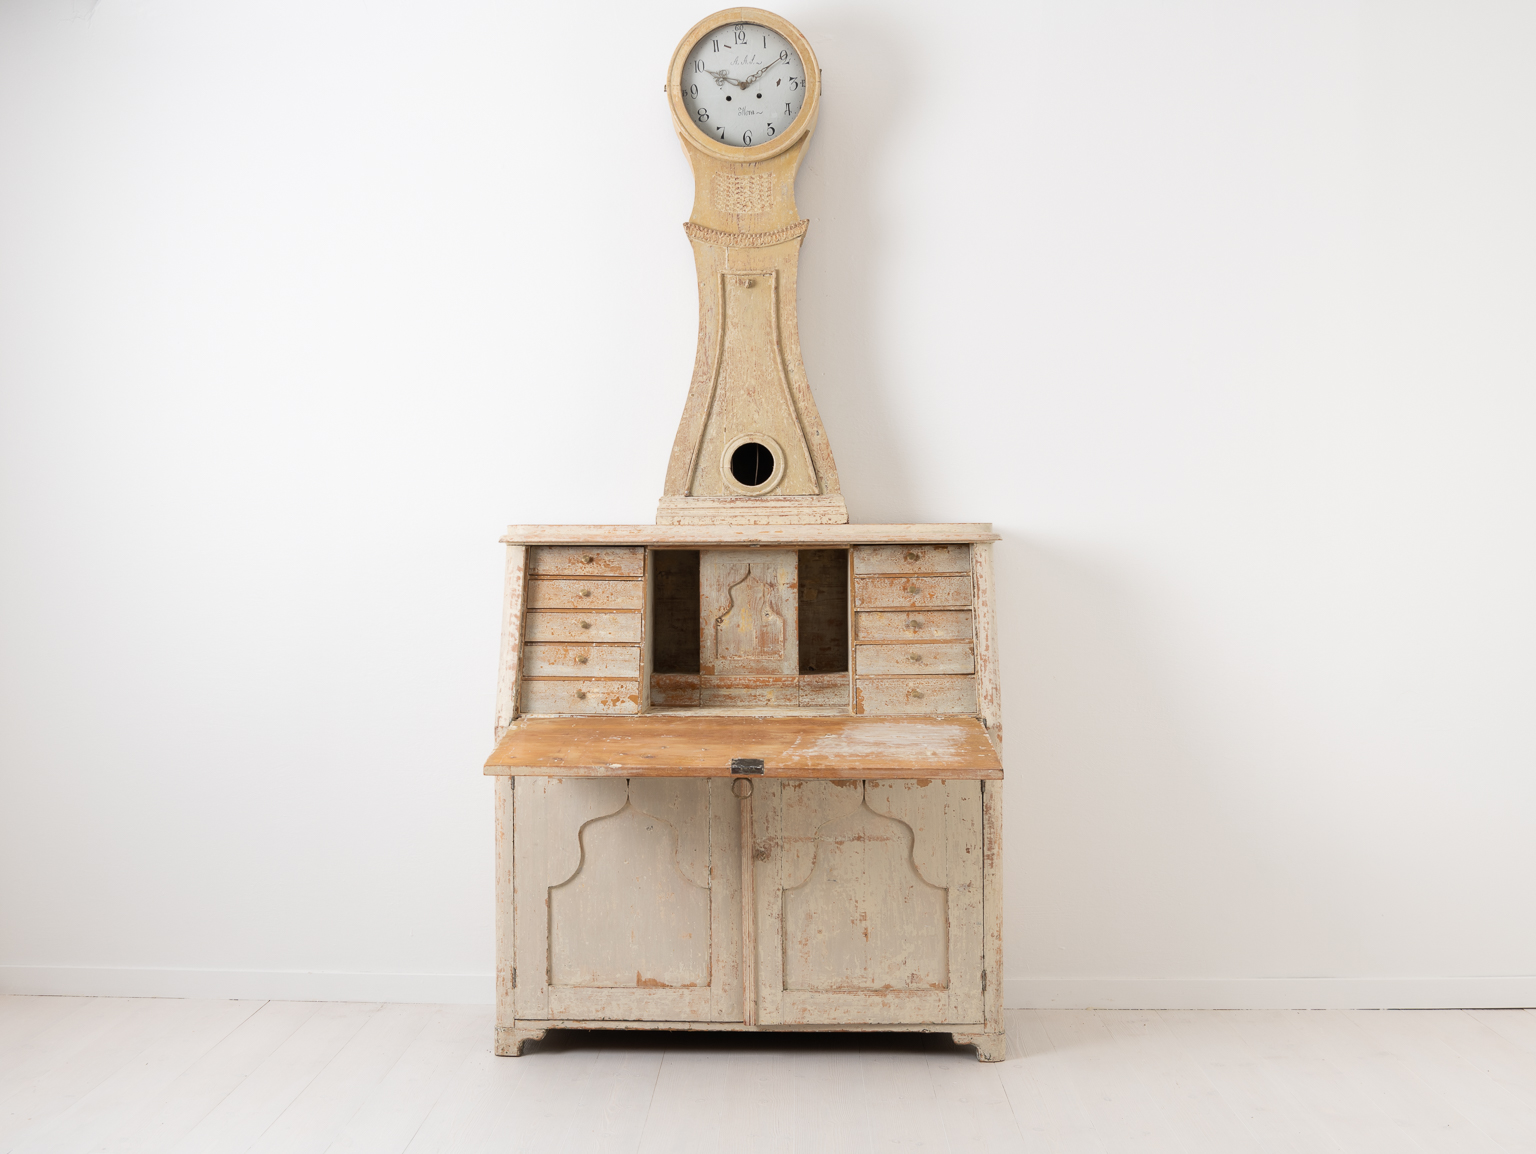 Antique clock secretary from northern Sweden. The clock is from around 1820 and dry scraped to the original light paint. Height to writers top is 70 cm